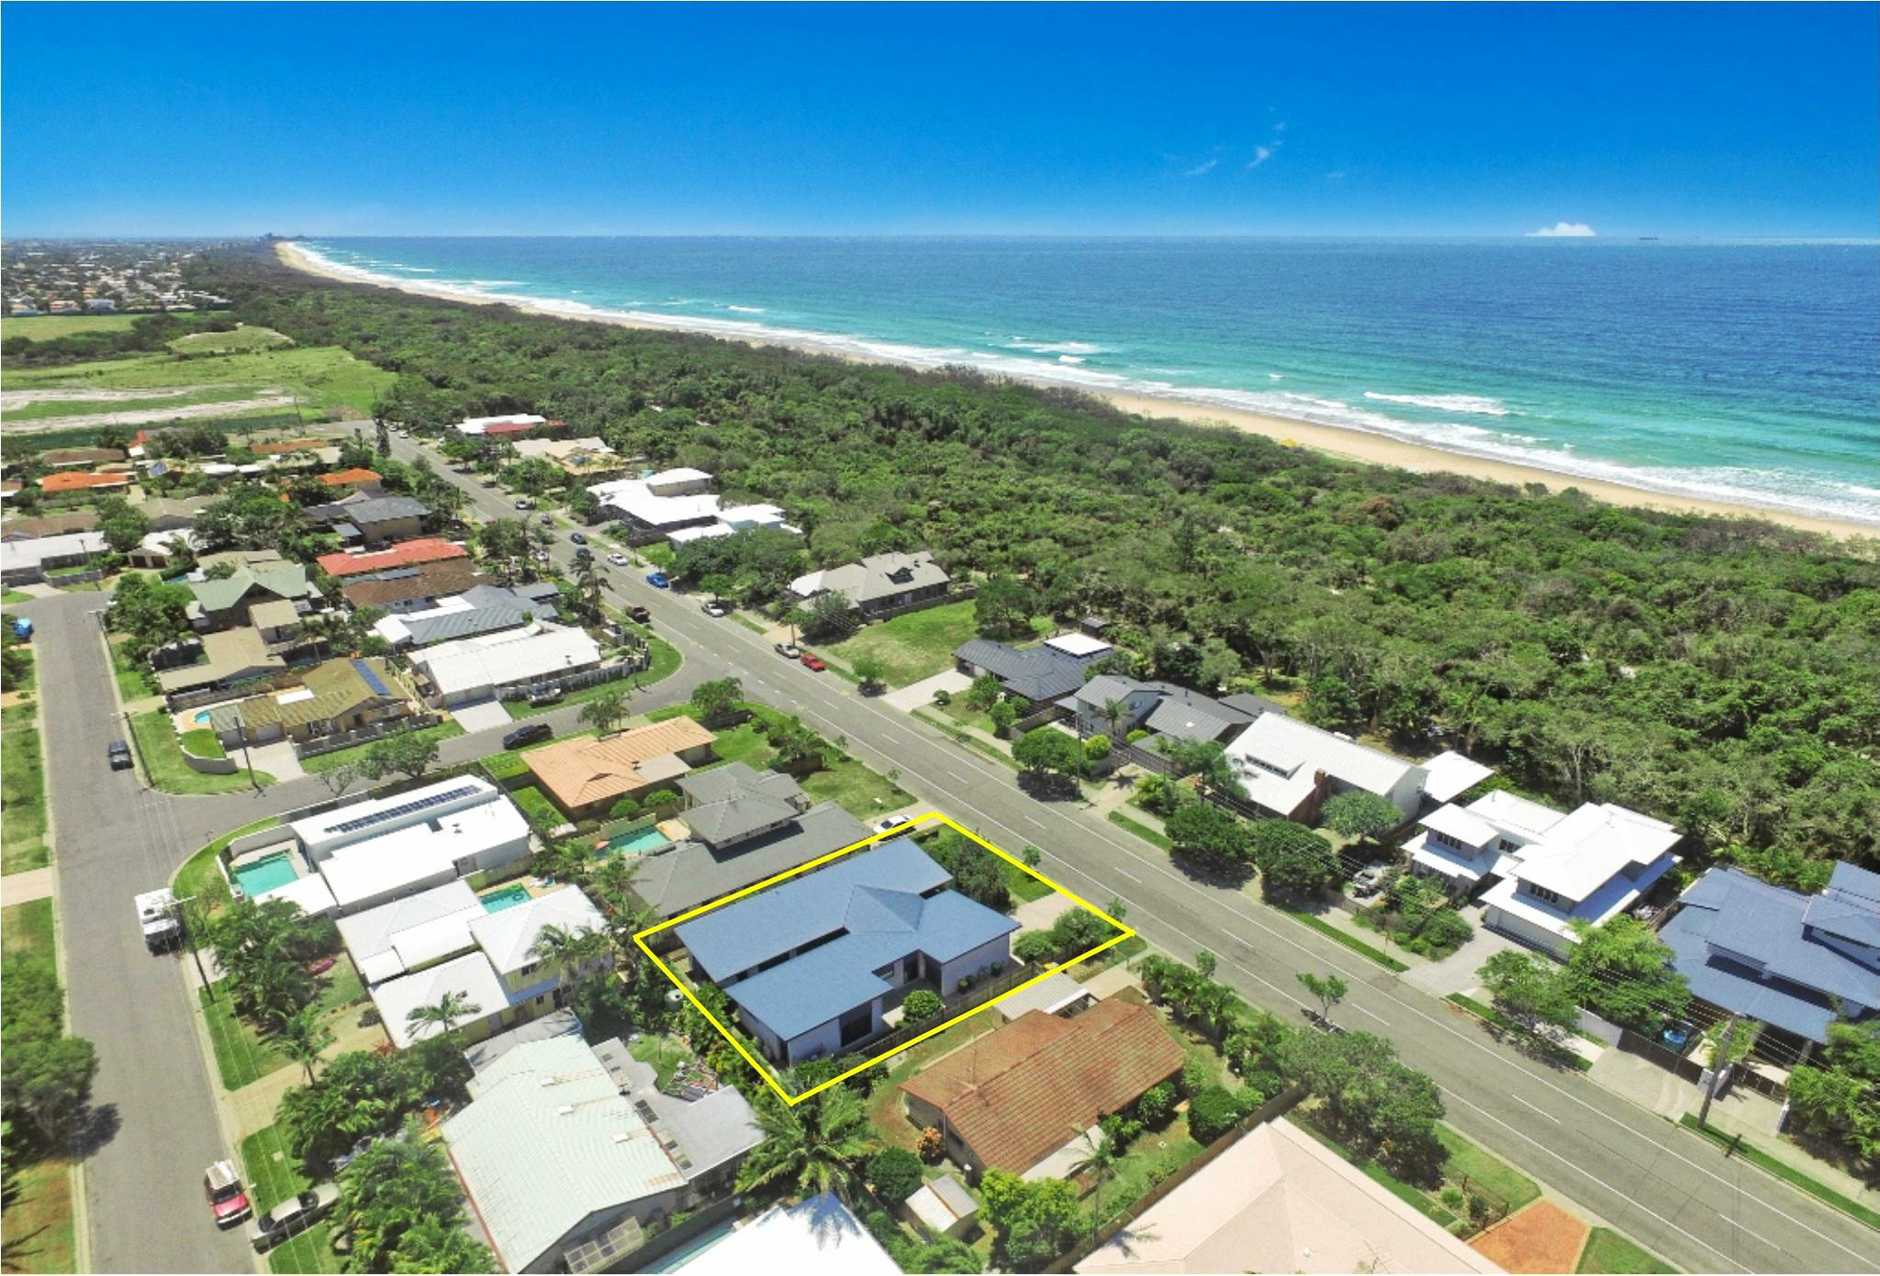 426 Oceanic Drive South, Wurtulla.